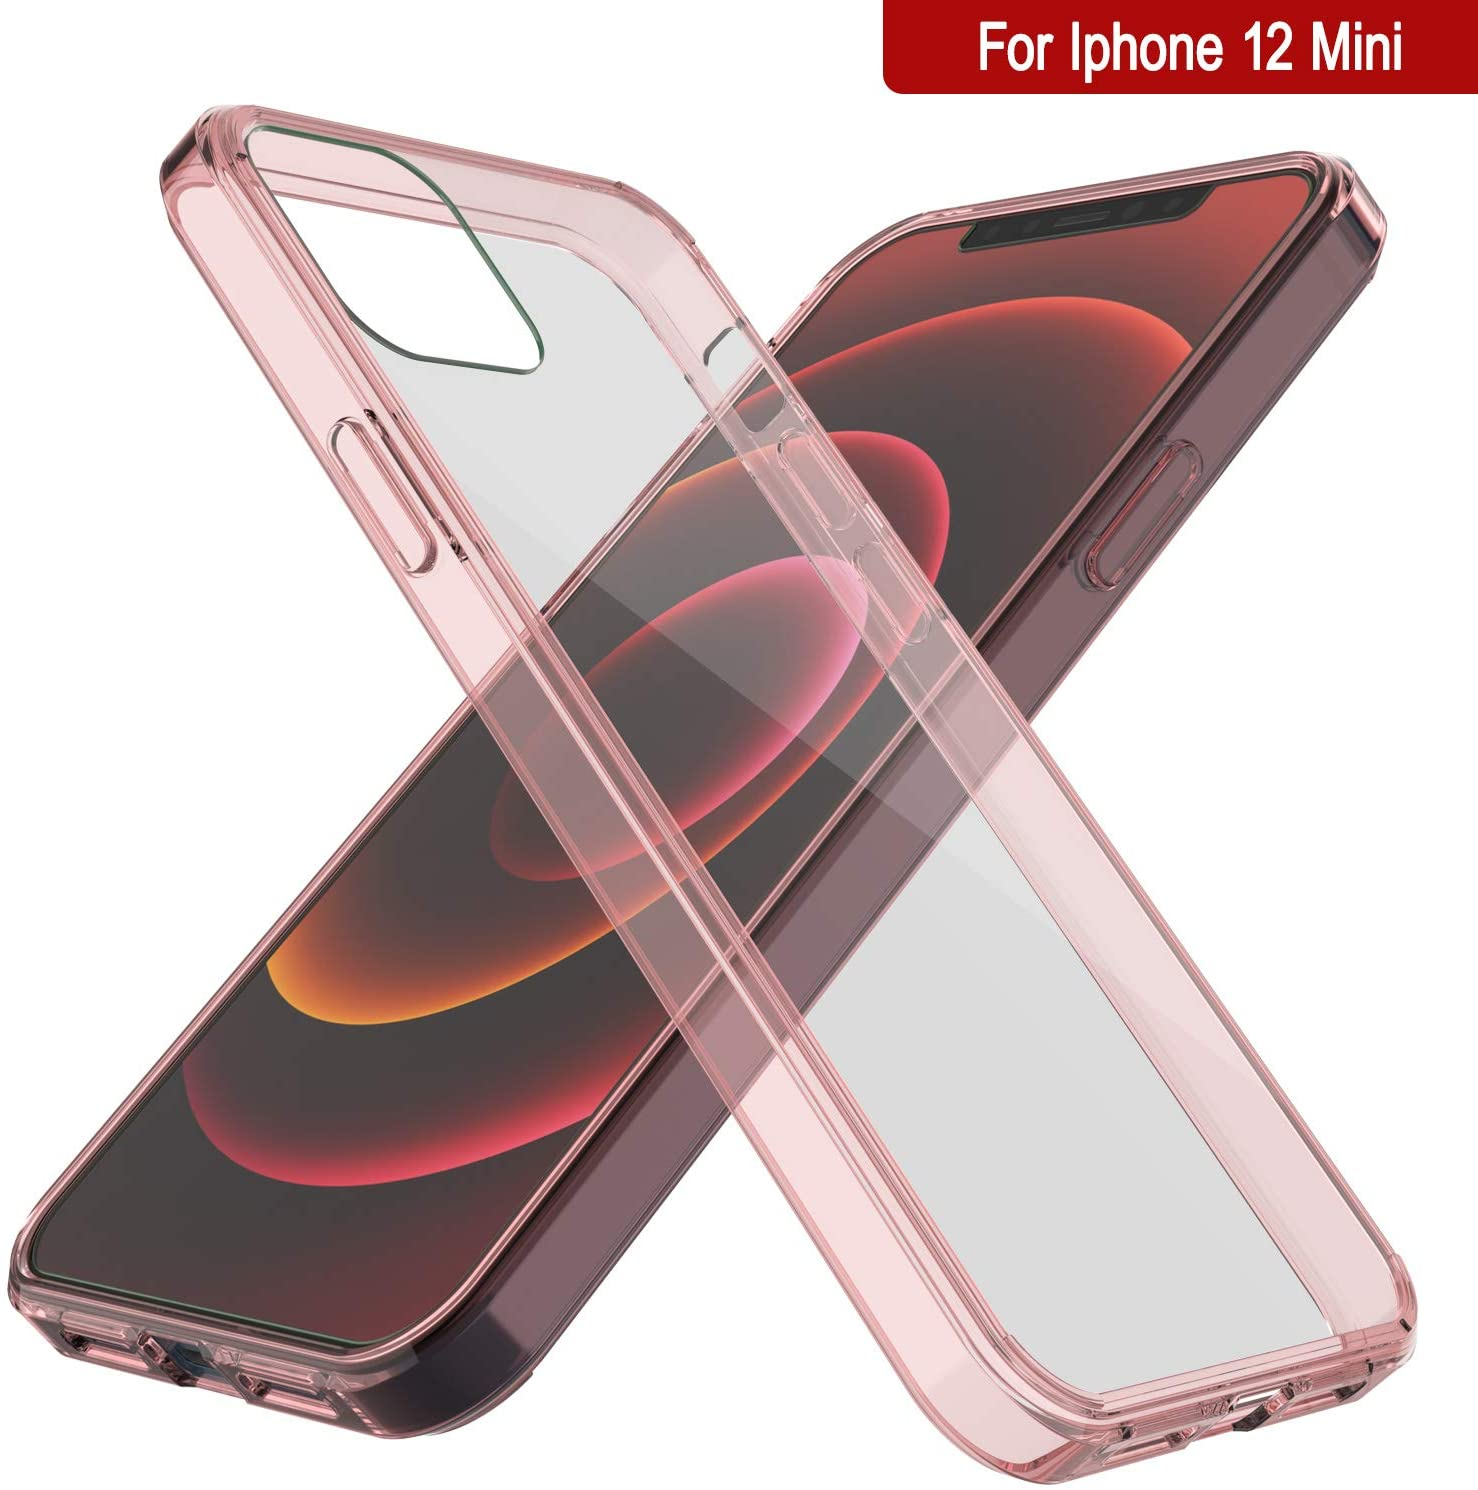 iPhone 12 Mini Case Punkcase® LUCID 2.0 Crystal Pink Series w/ PUNK SHIELD Screen Protector | Ultra Fit